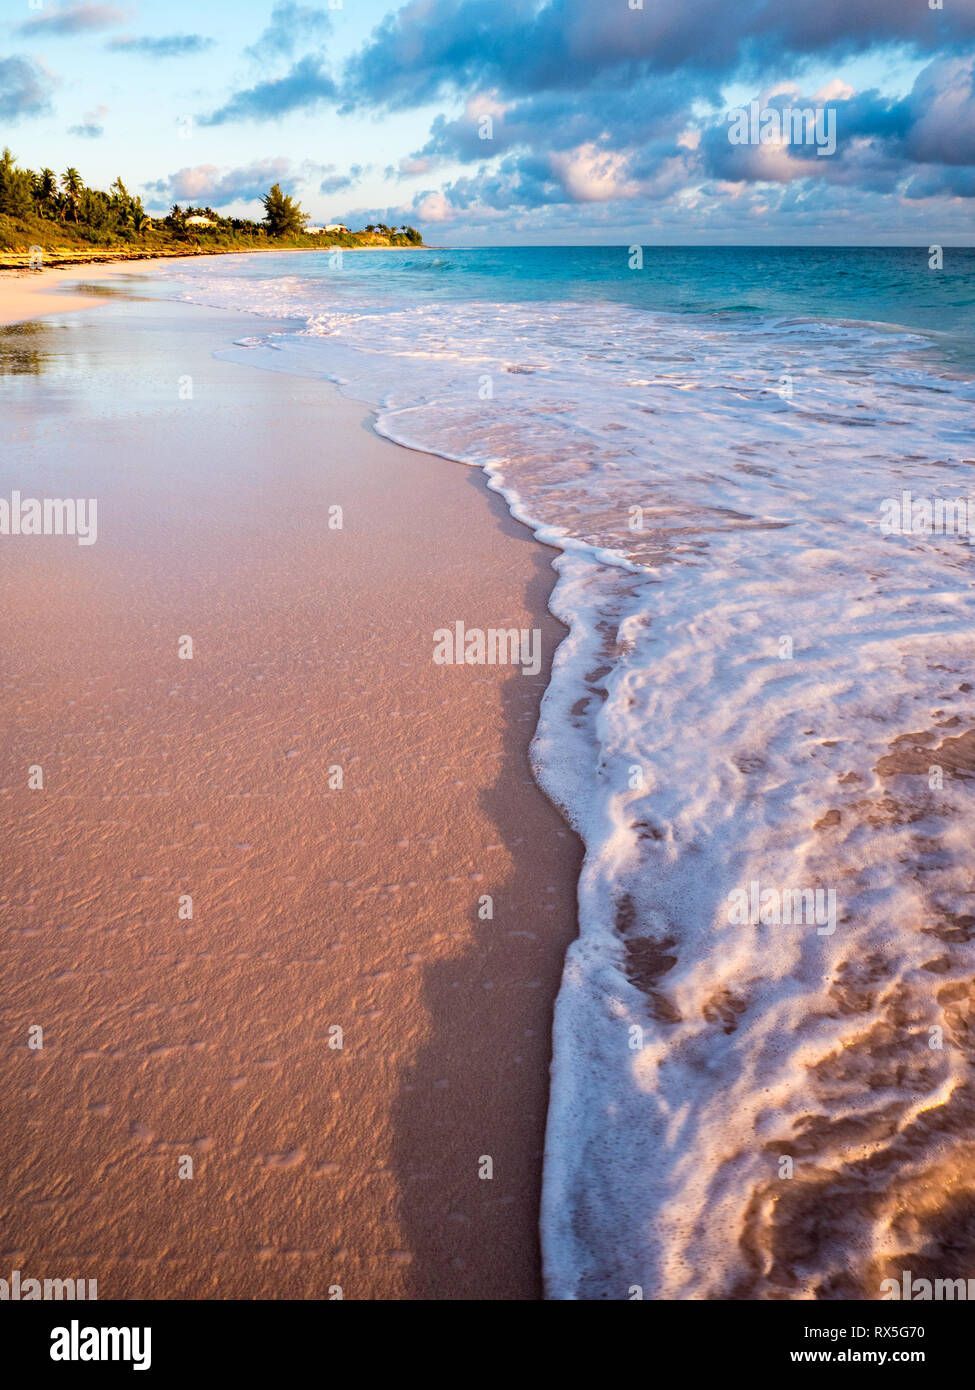 Surf on Tropical Beach Dawn, Governors Harbour, Eleuthera, The Bahamas, The Caribbean. - Stock Image